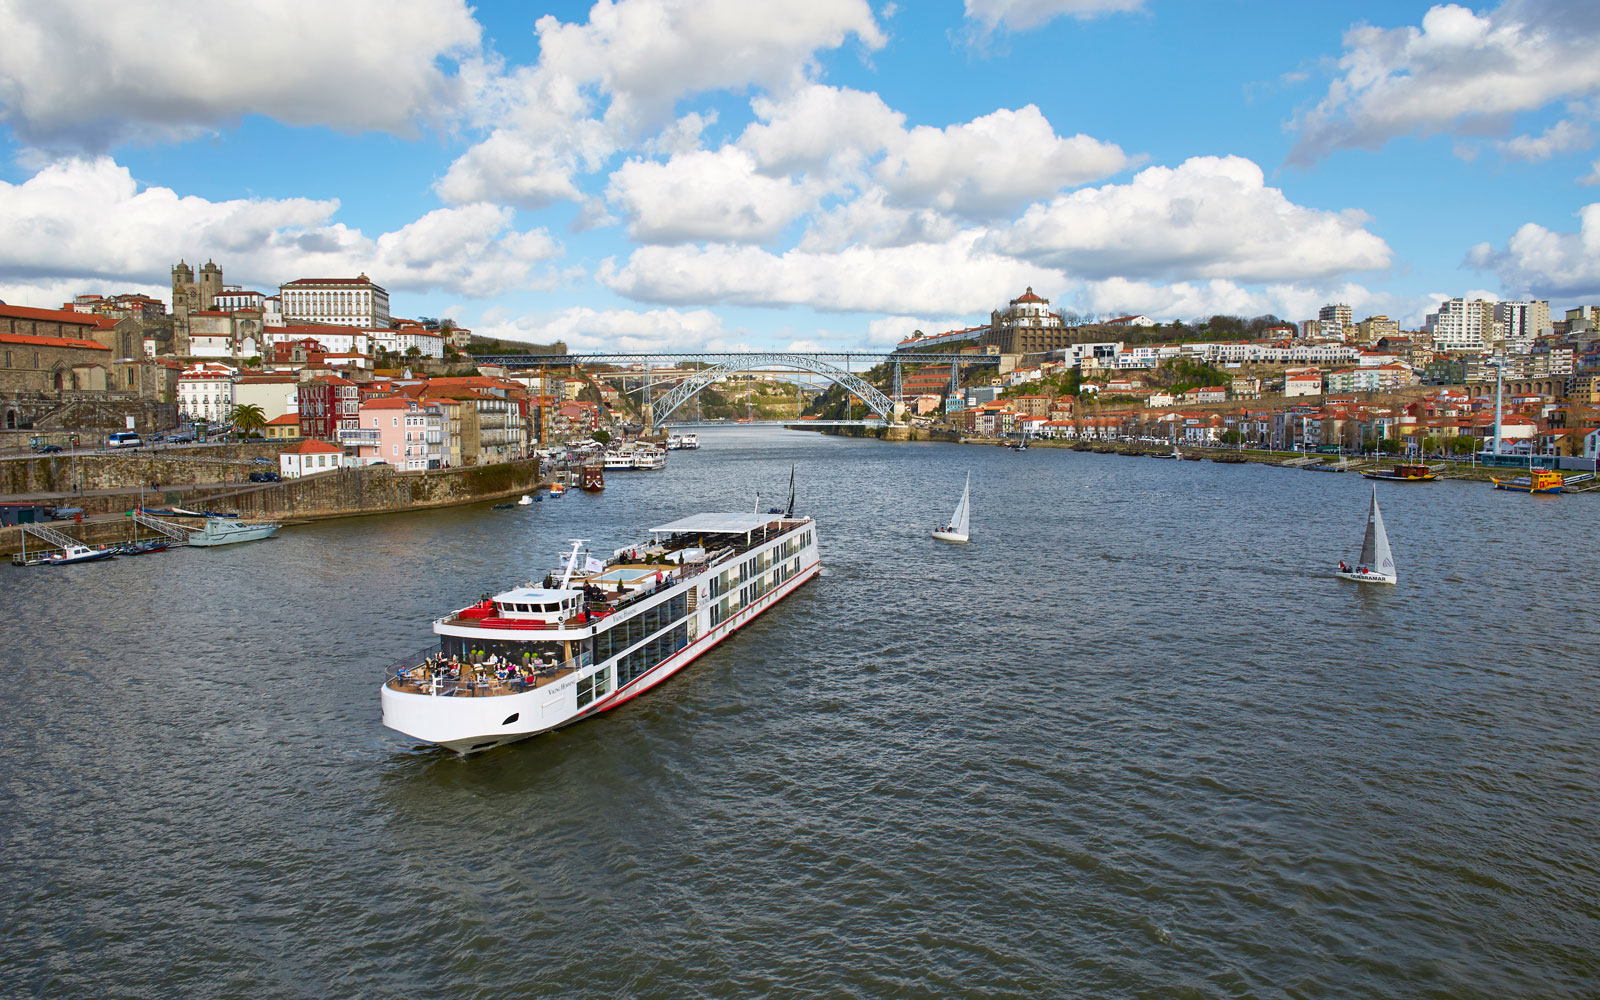 Viking River Cruise in Portugal